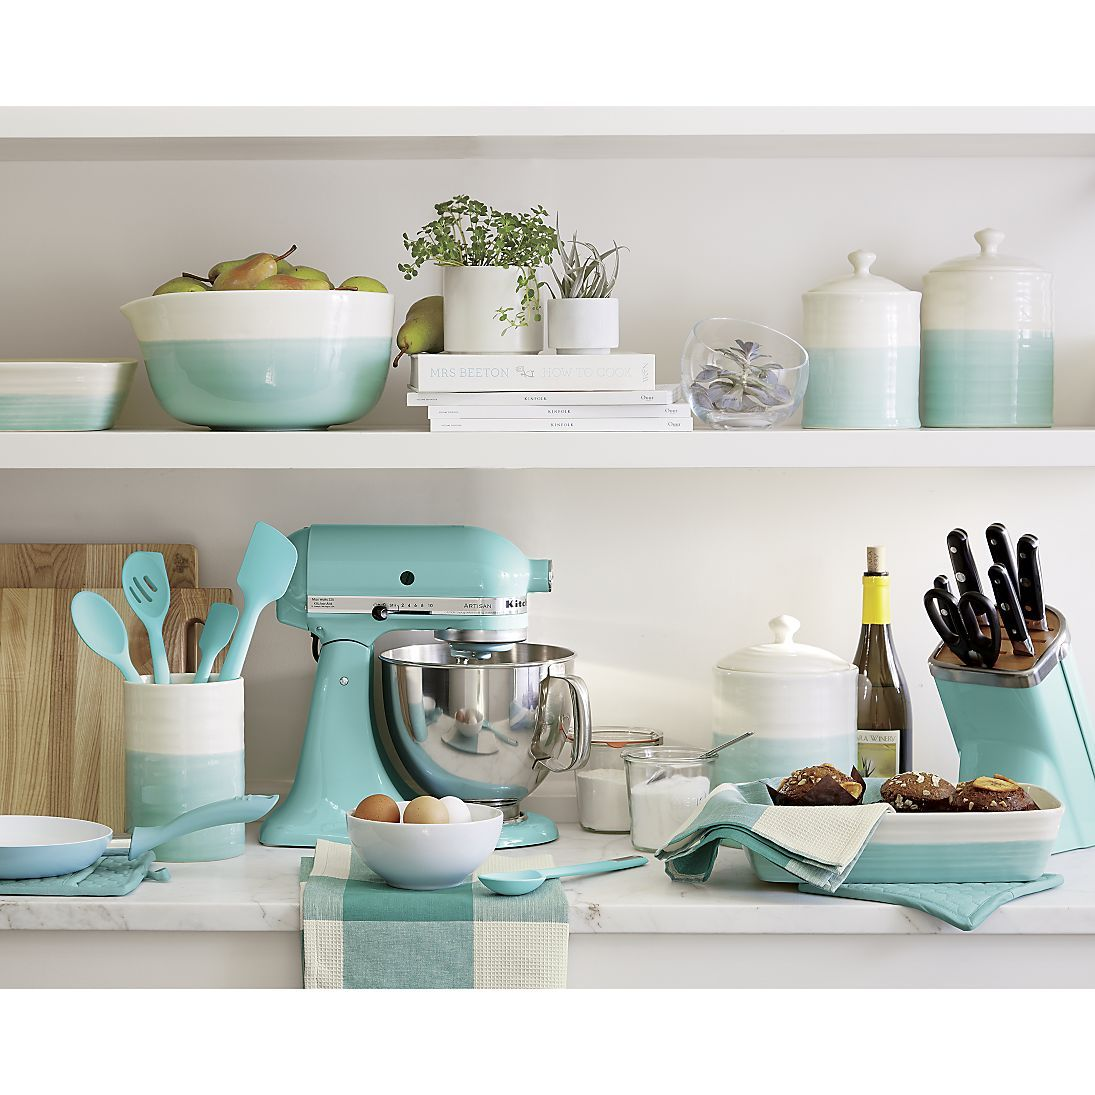 KitchenAid mixer + Aqua Sky accessories | I Want That! | Pinterest ...